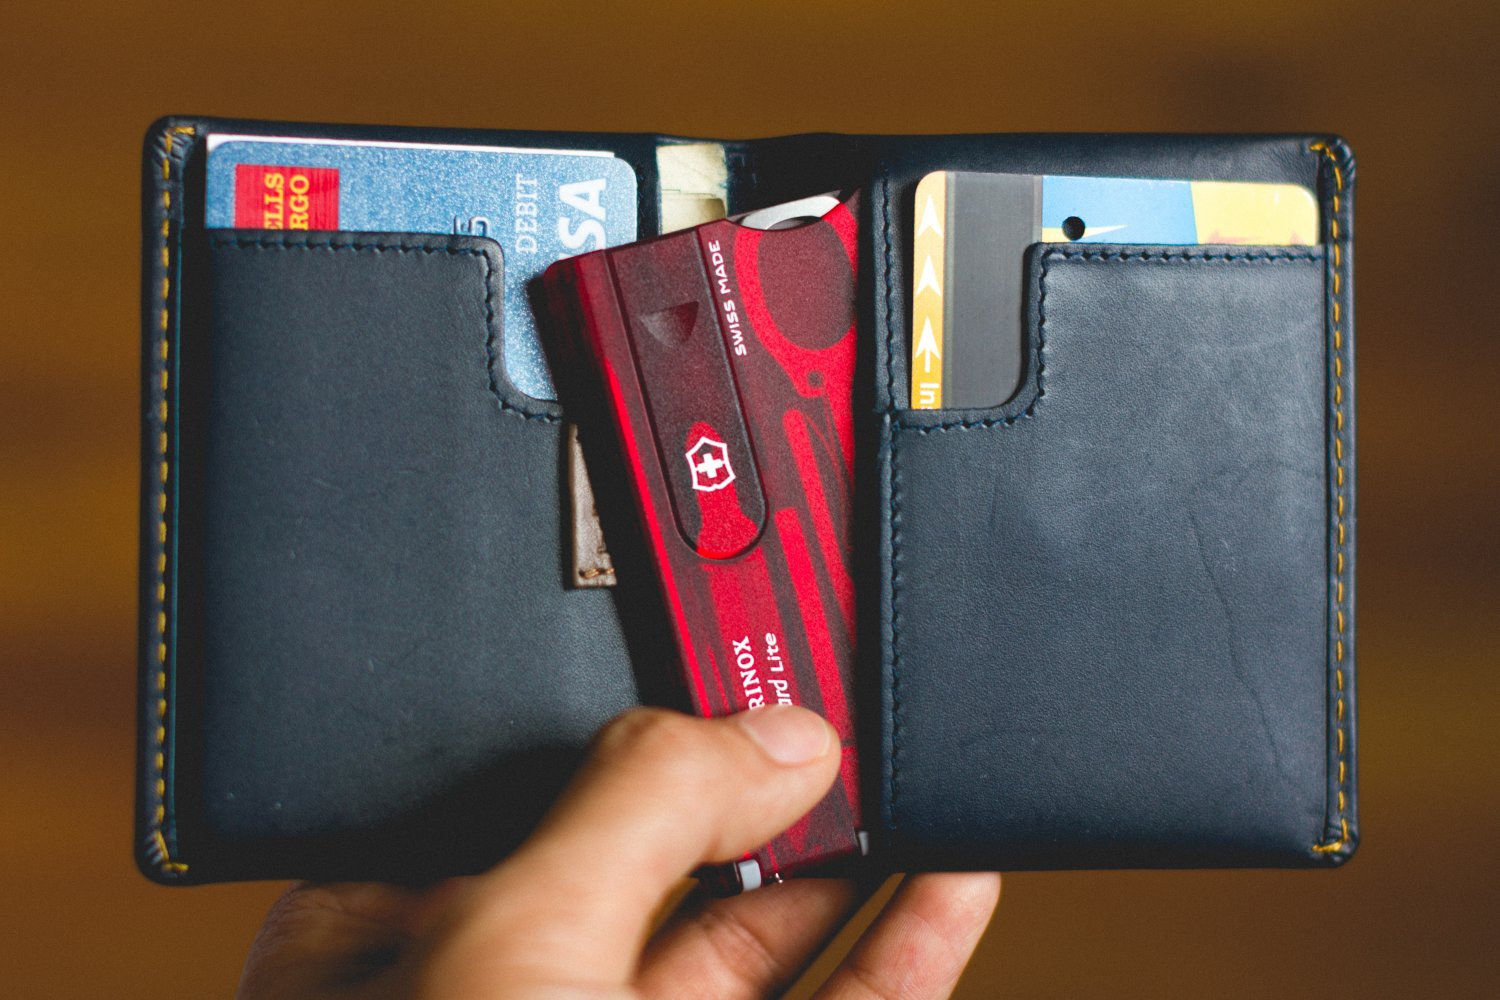 10 Best EDC Card Tools for Your Wallet in 2020